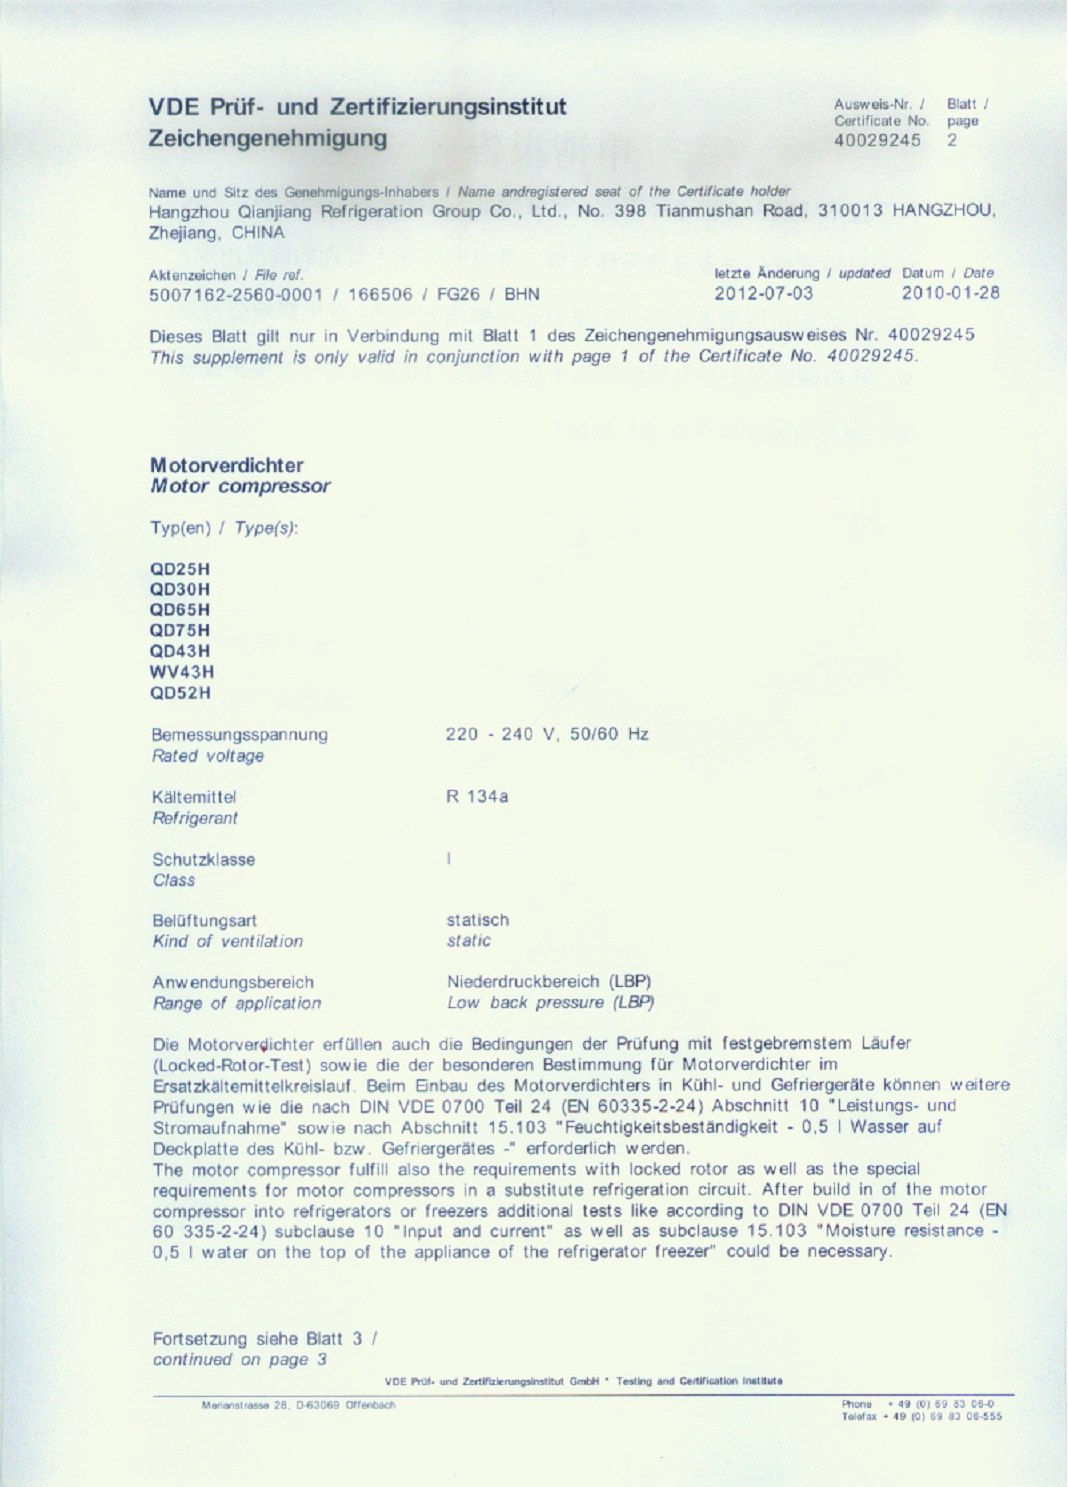 VDE certificate page 2&3